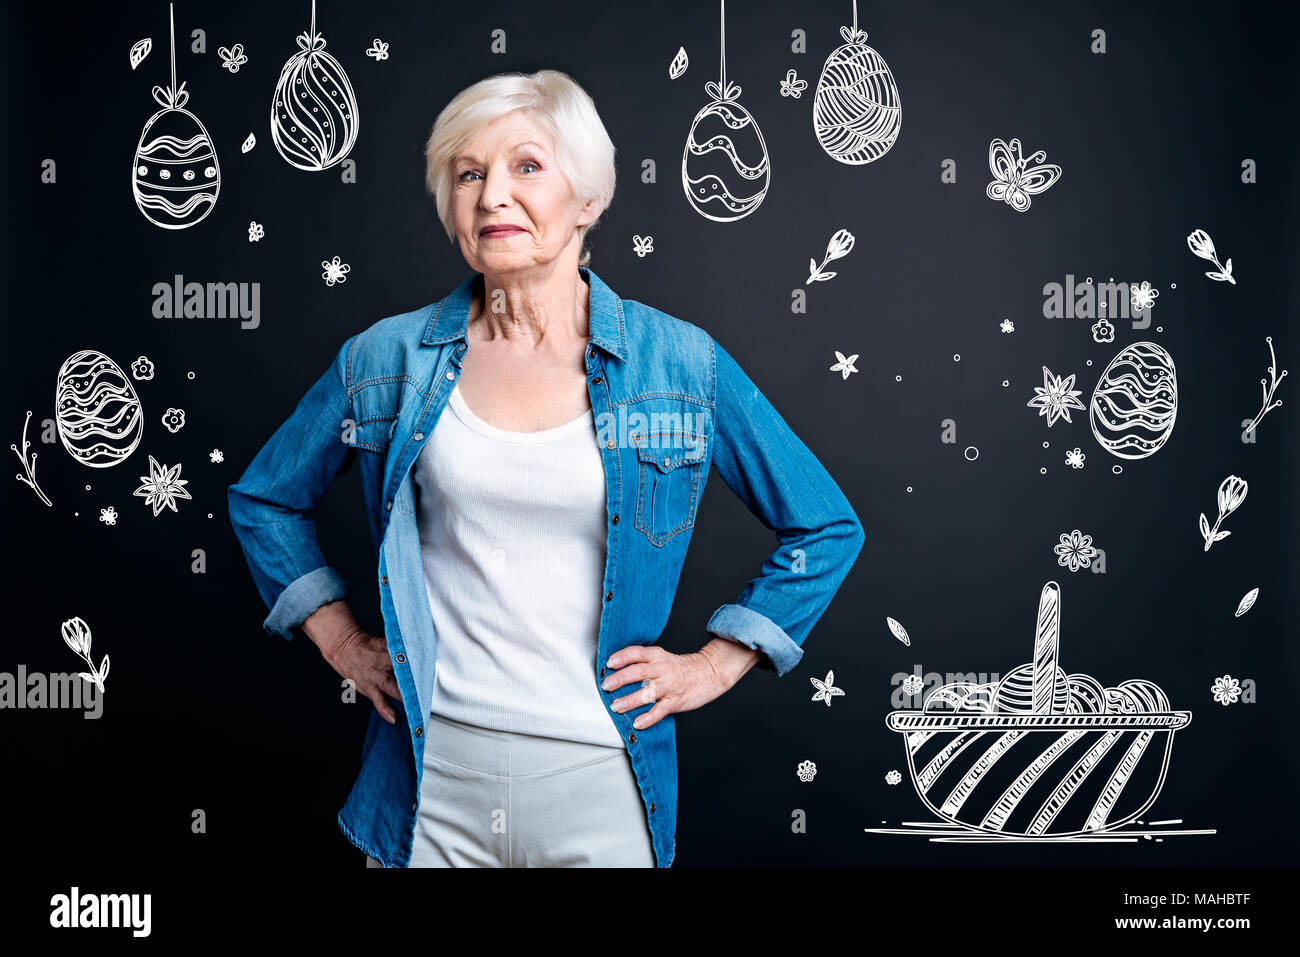 Emotional woman standing with her hands on hips and waiting for Easter - Stock Image